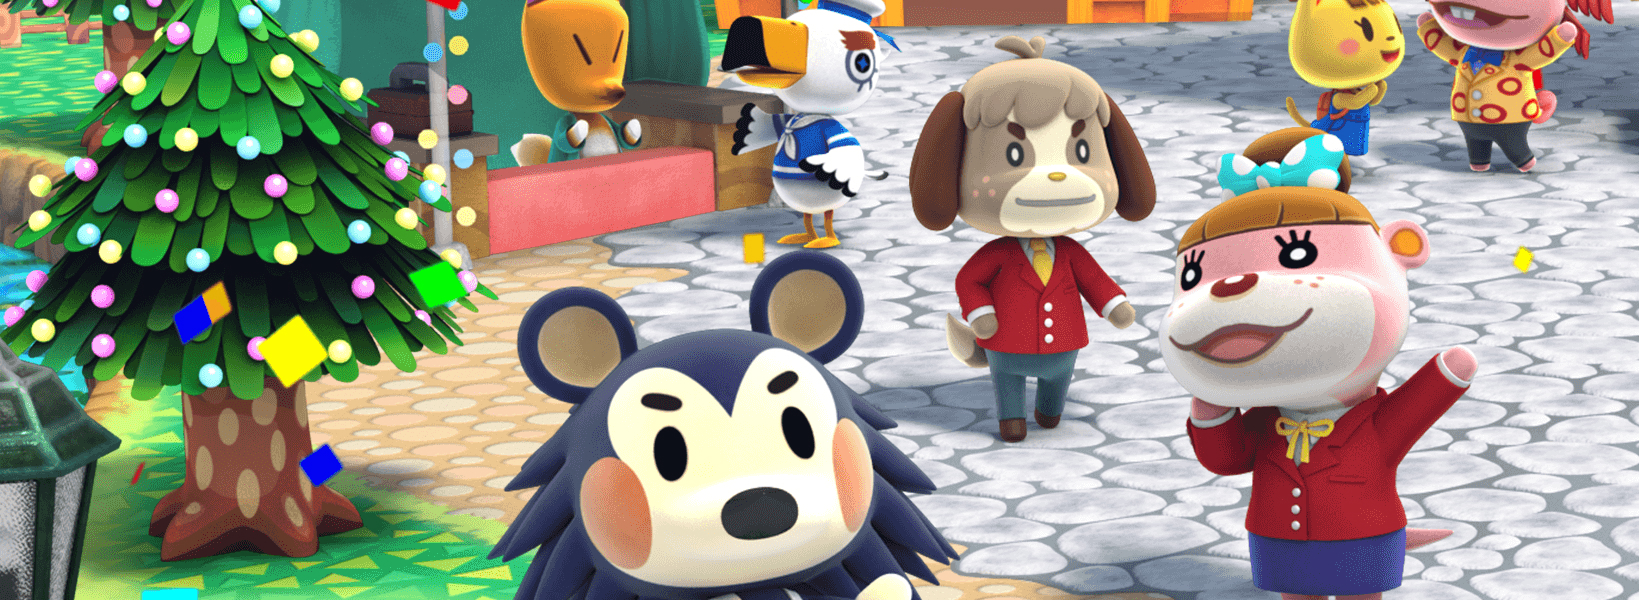 animal-crossing-featured.jpg